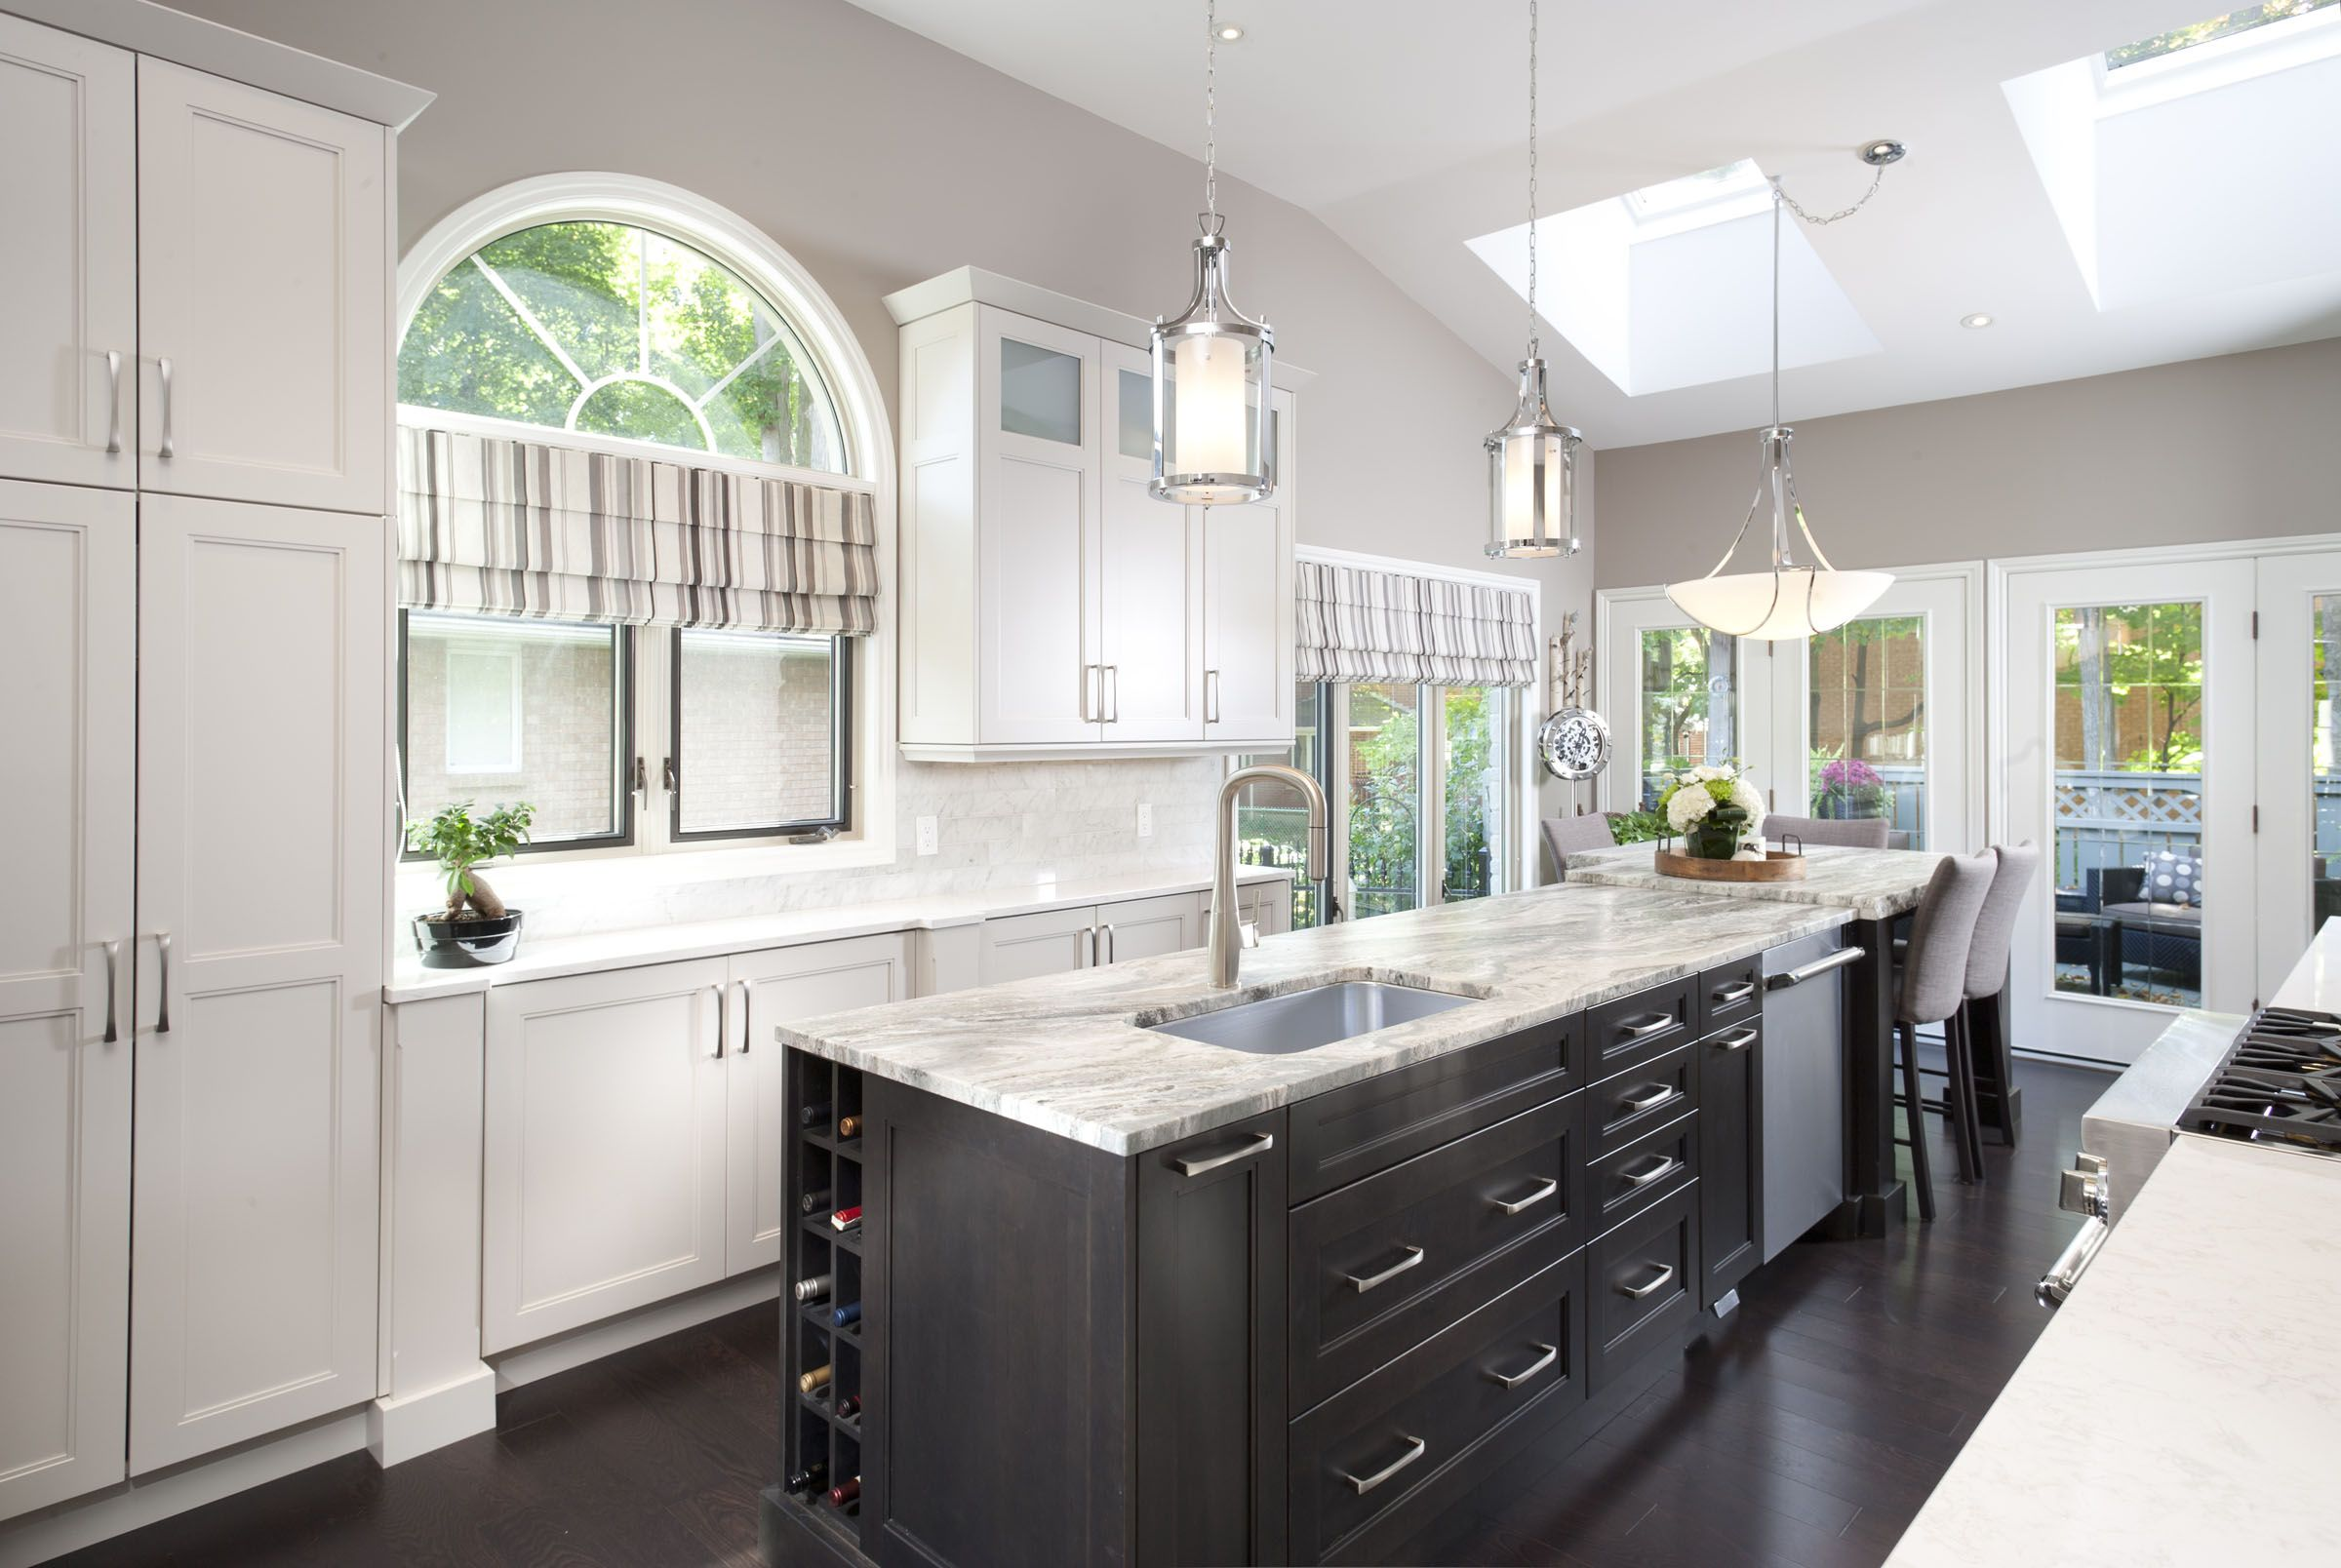 Painted white perimeter cabinetry with dark island. Leathered ...